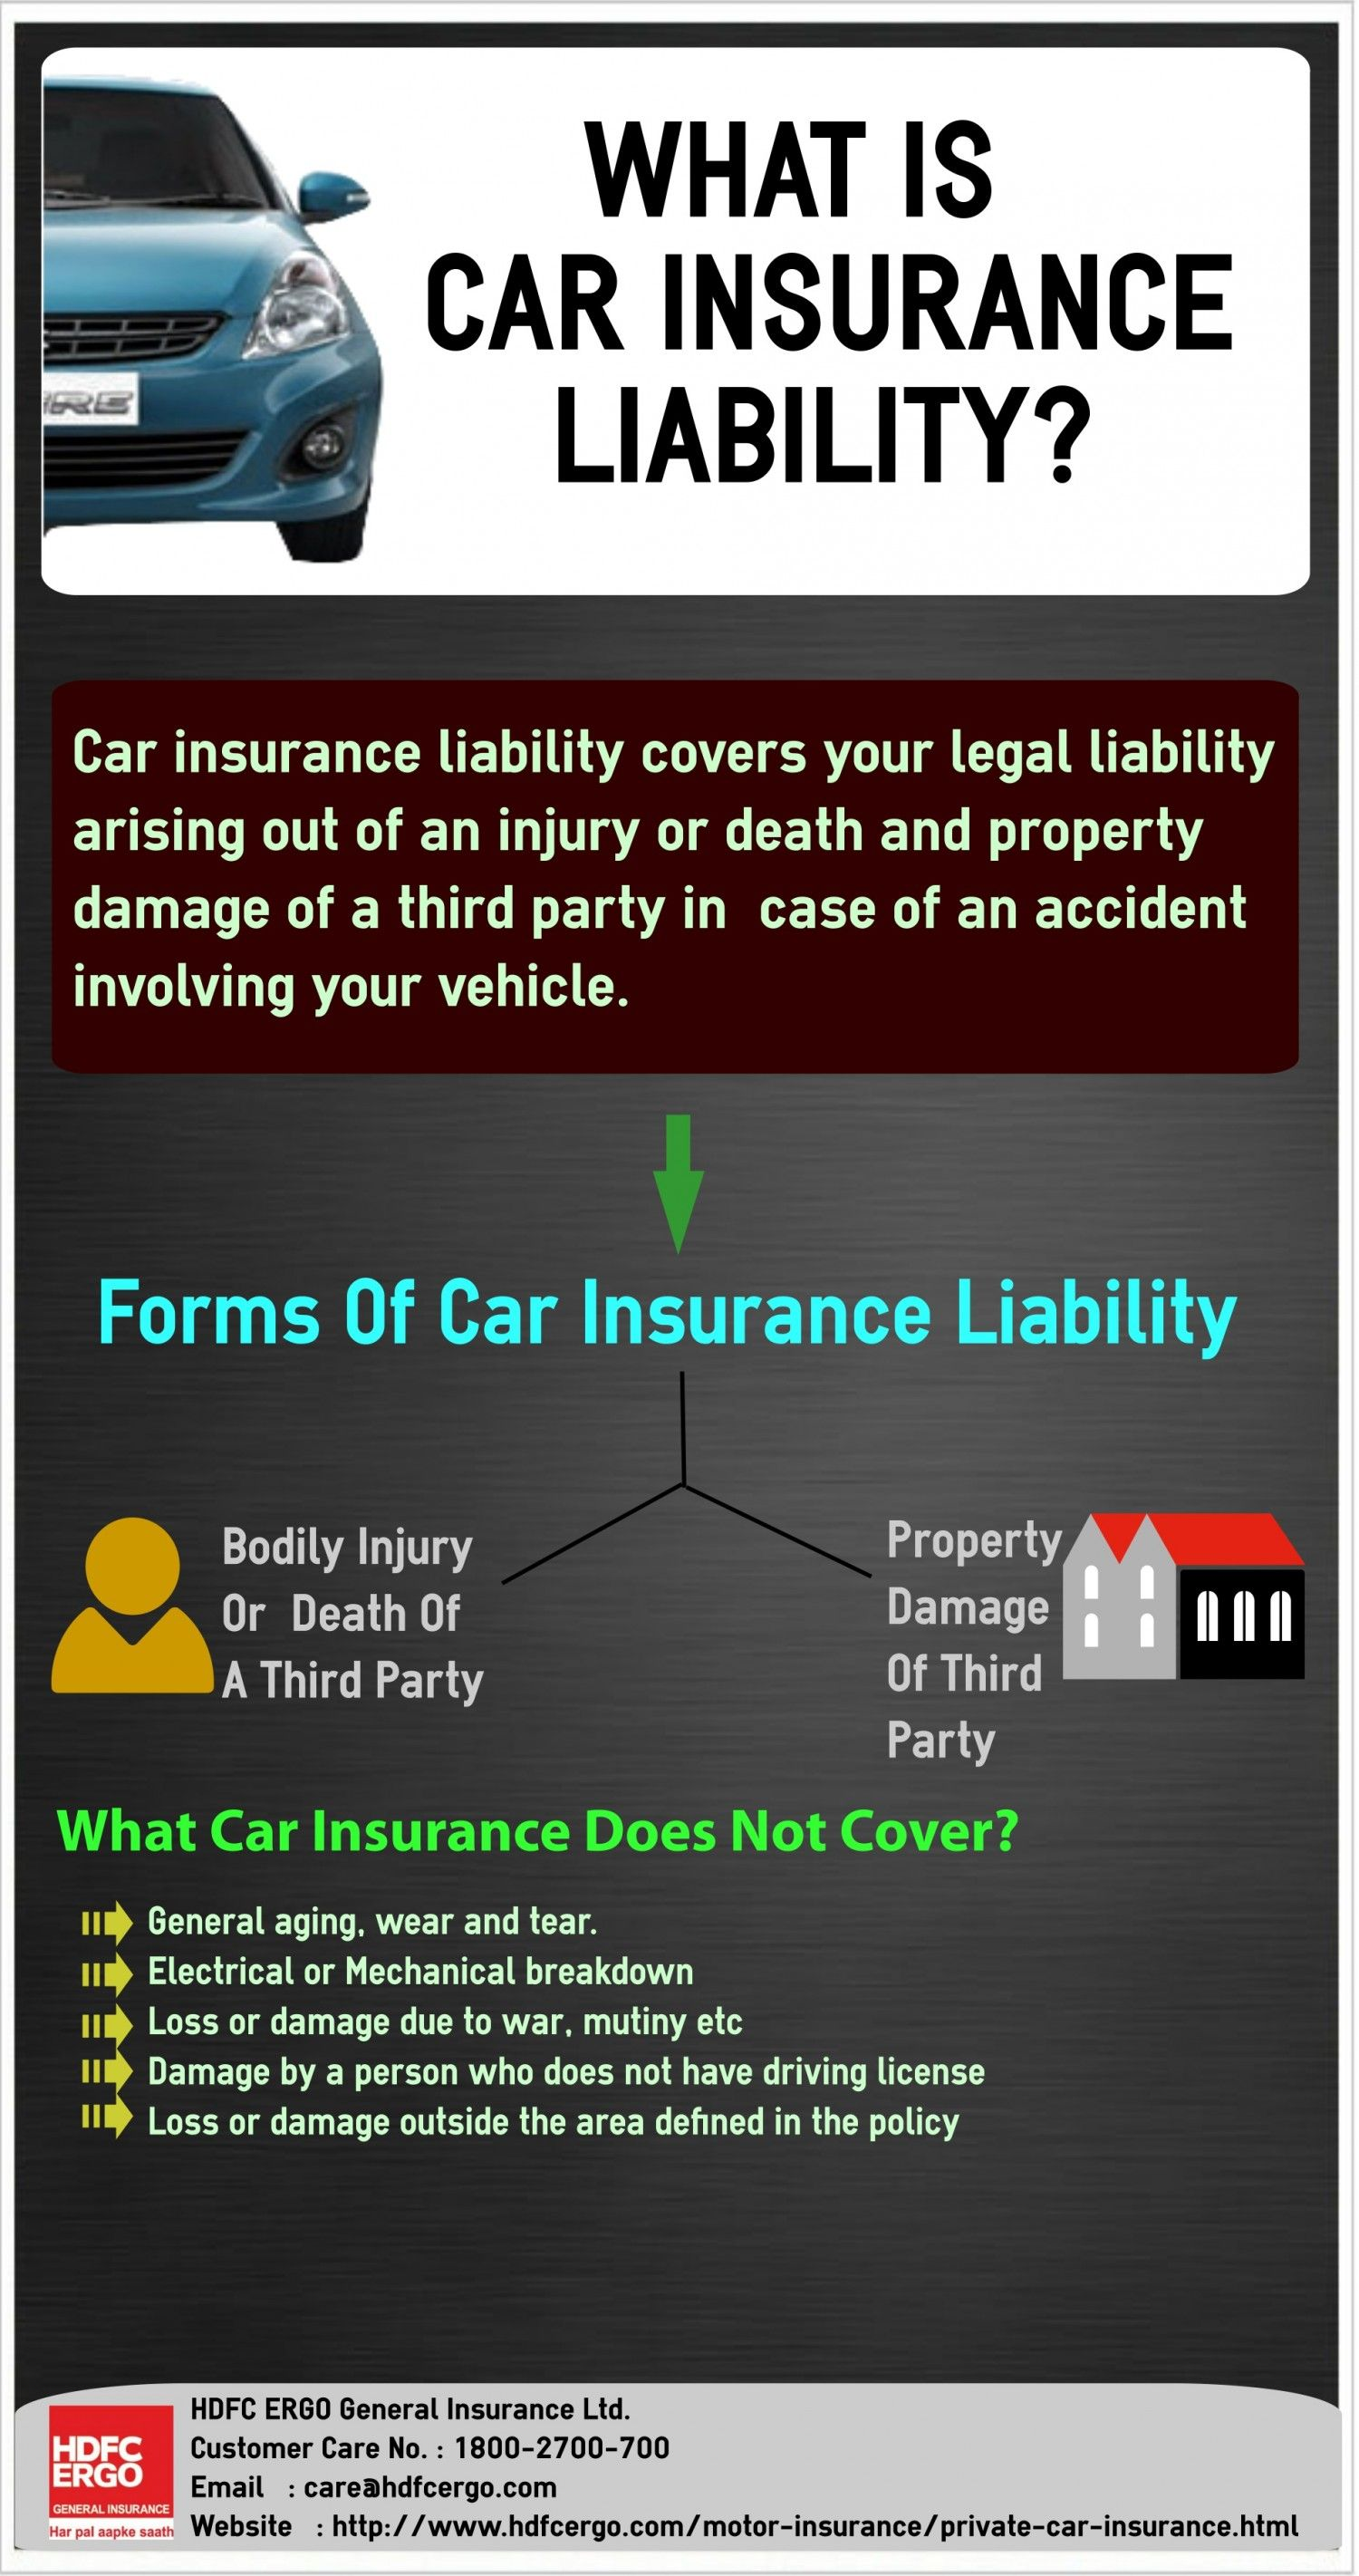 What Is Car Insurance Liability? Visually Car insurance